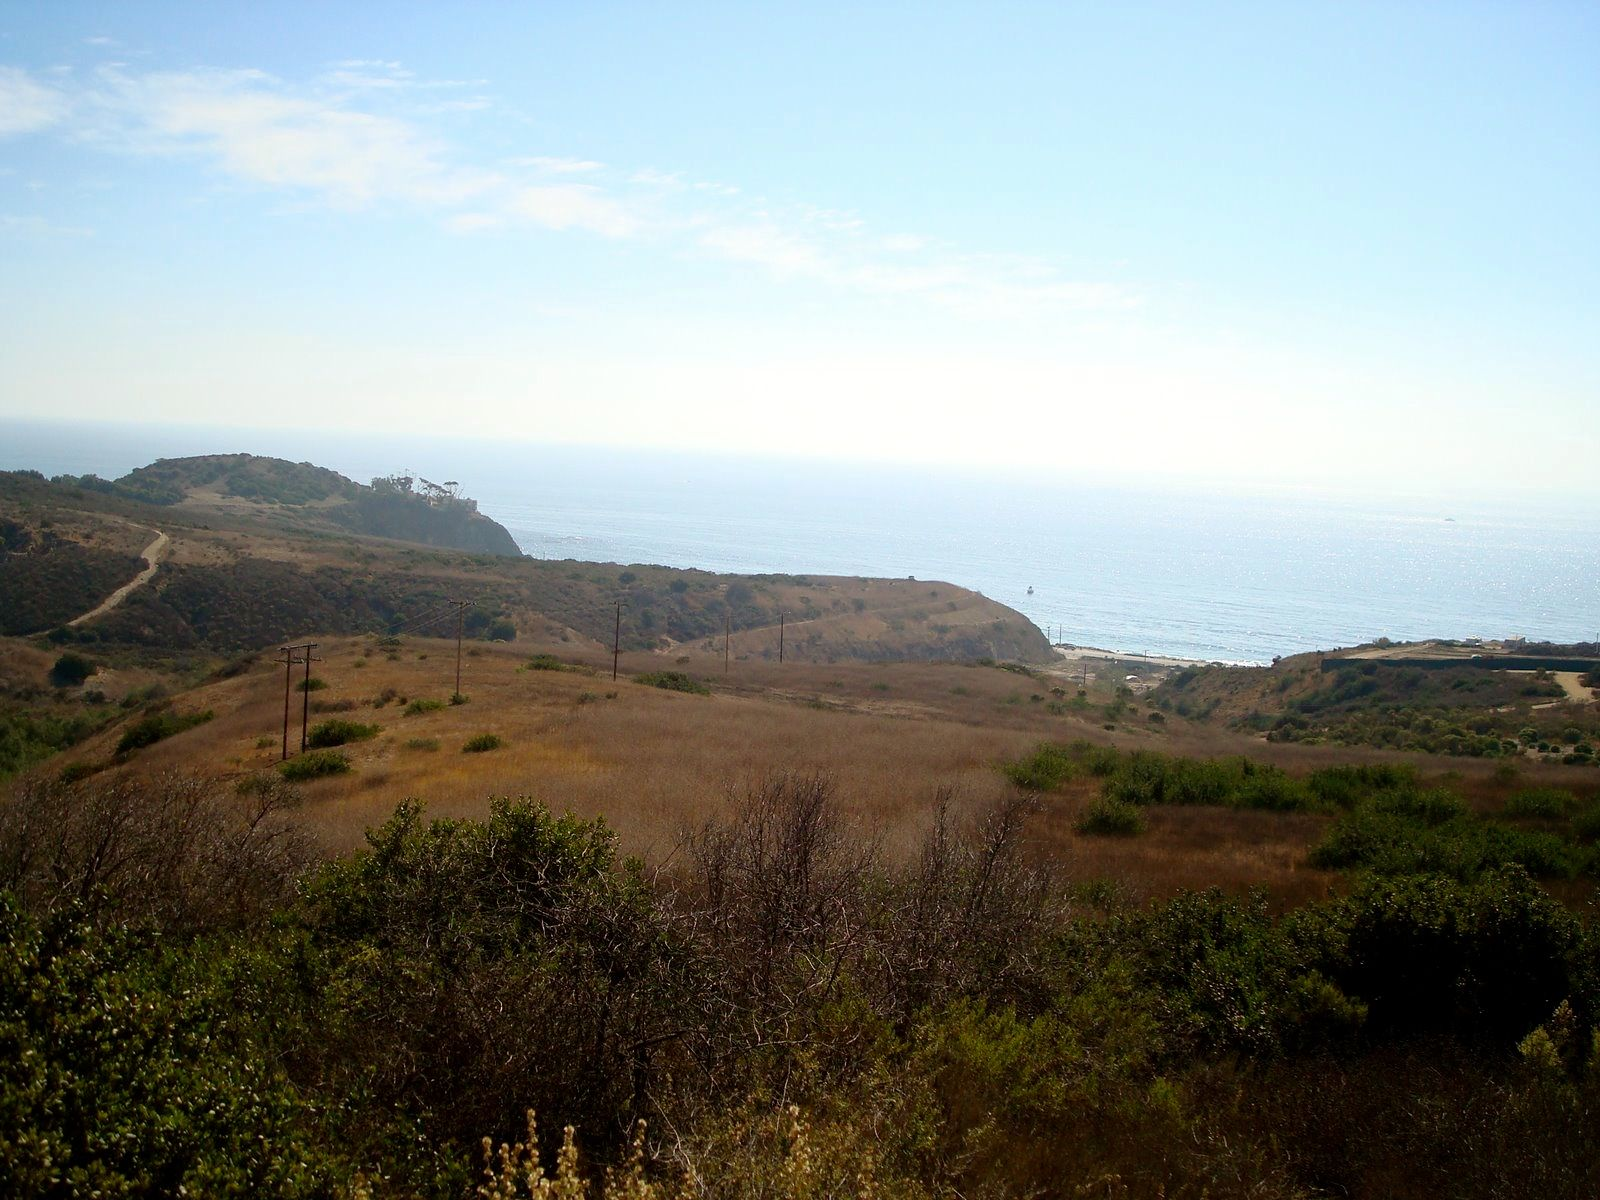 After you climb the first hill, you are rewarded with a view of the ocean!